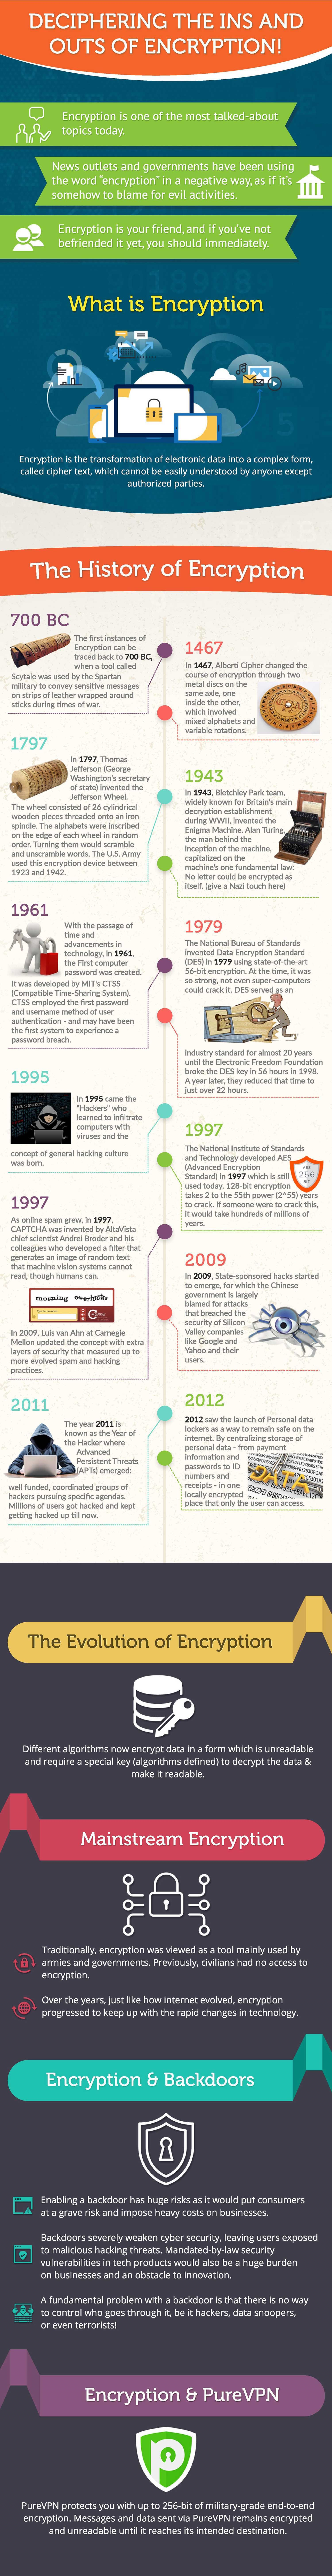 Deciphering the History of Encryption Infographic